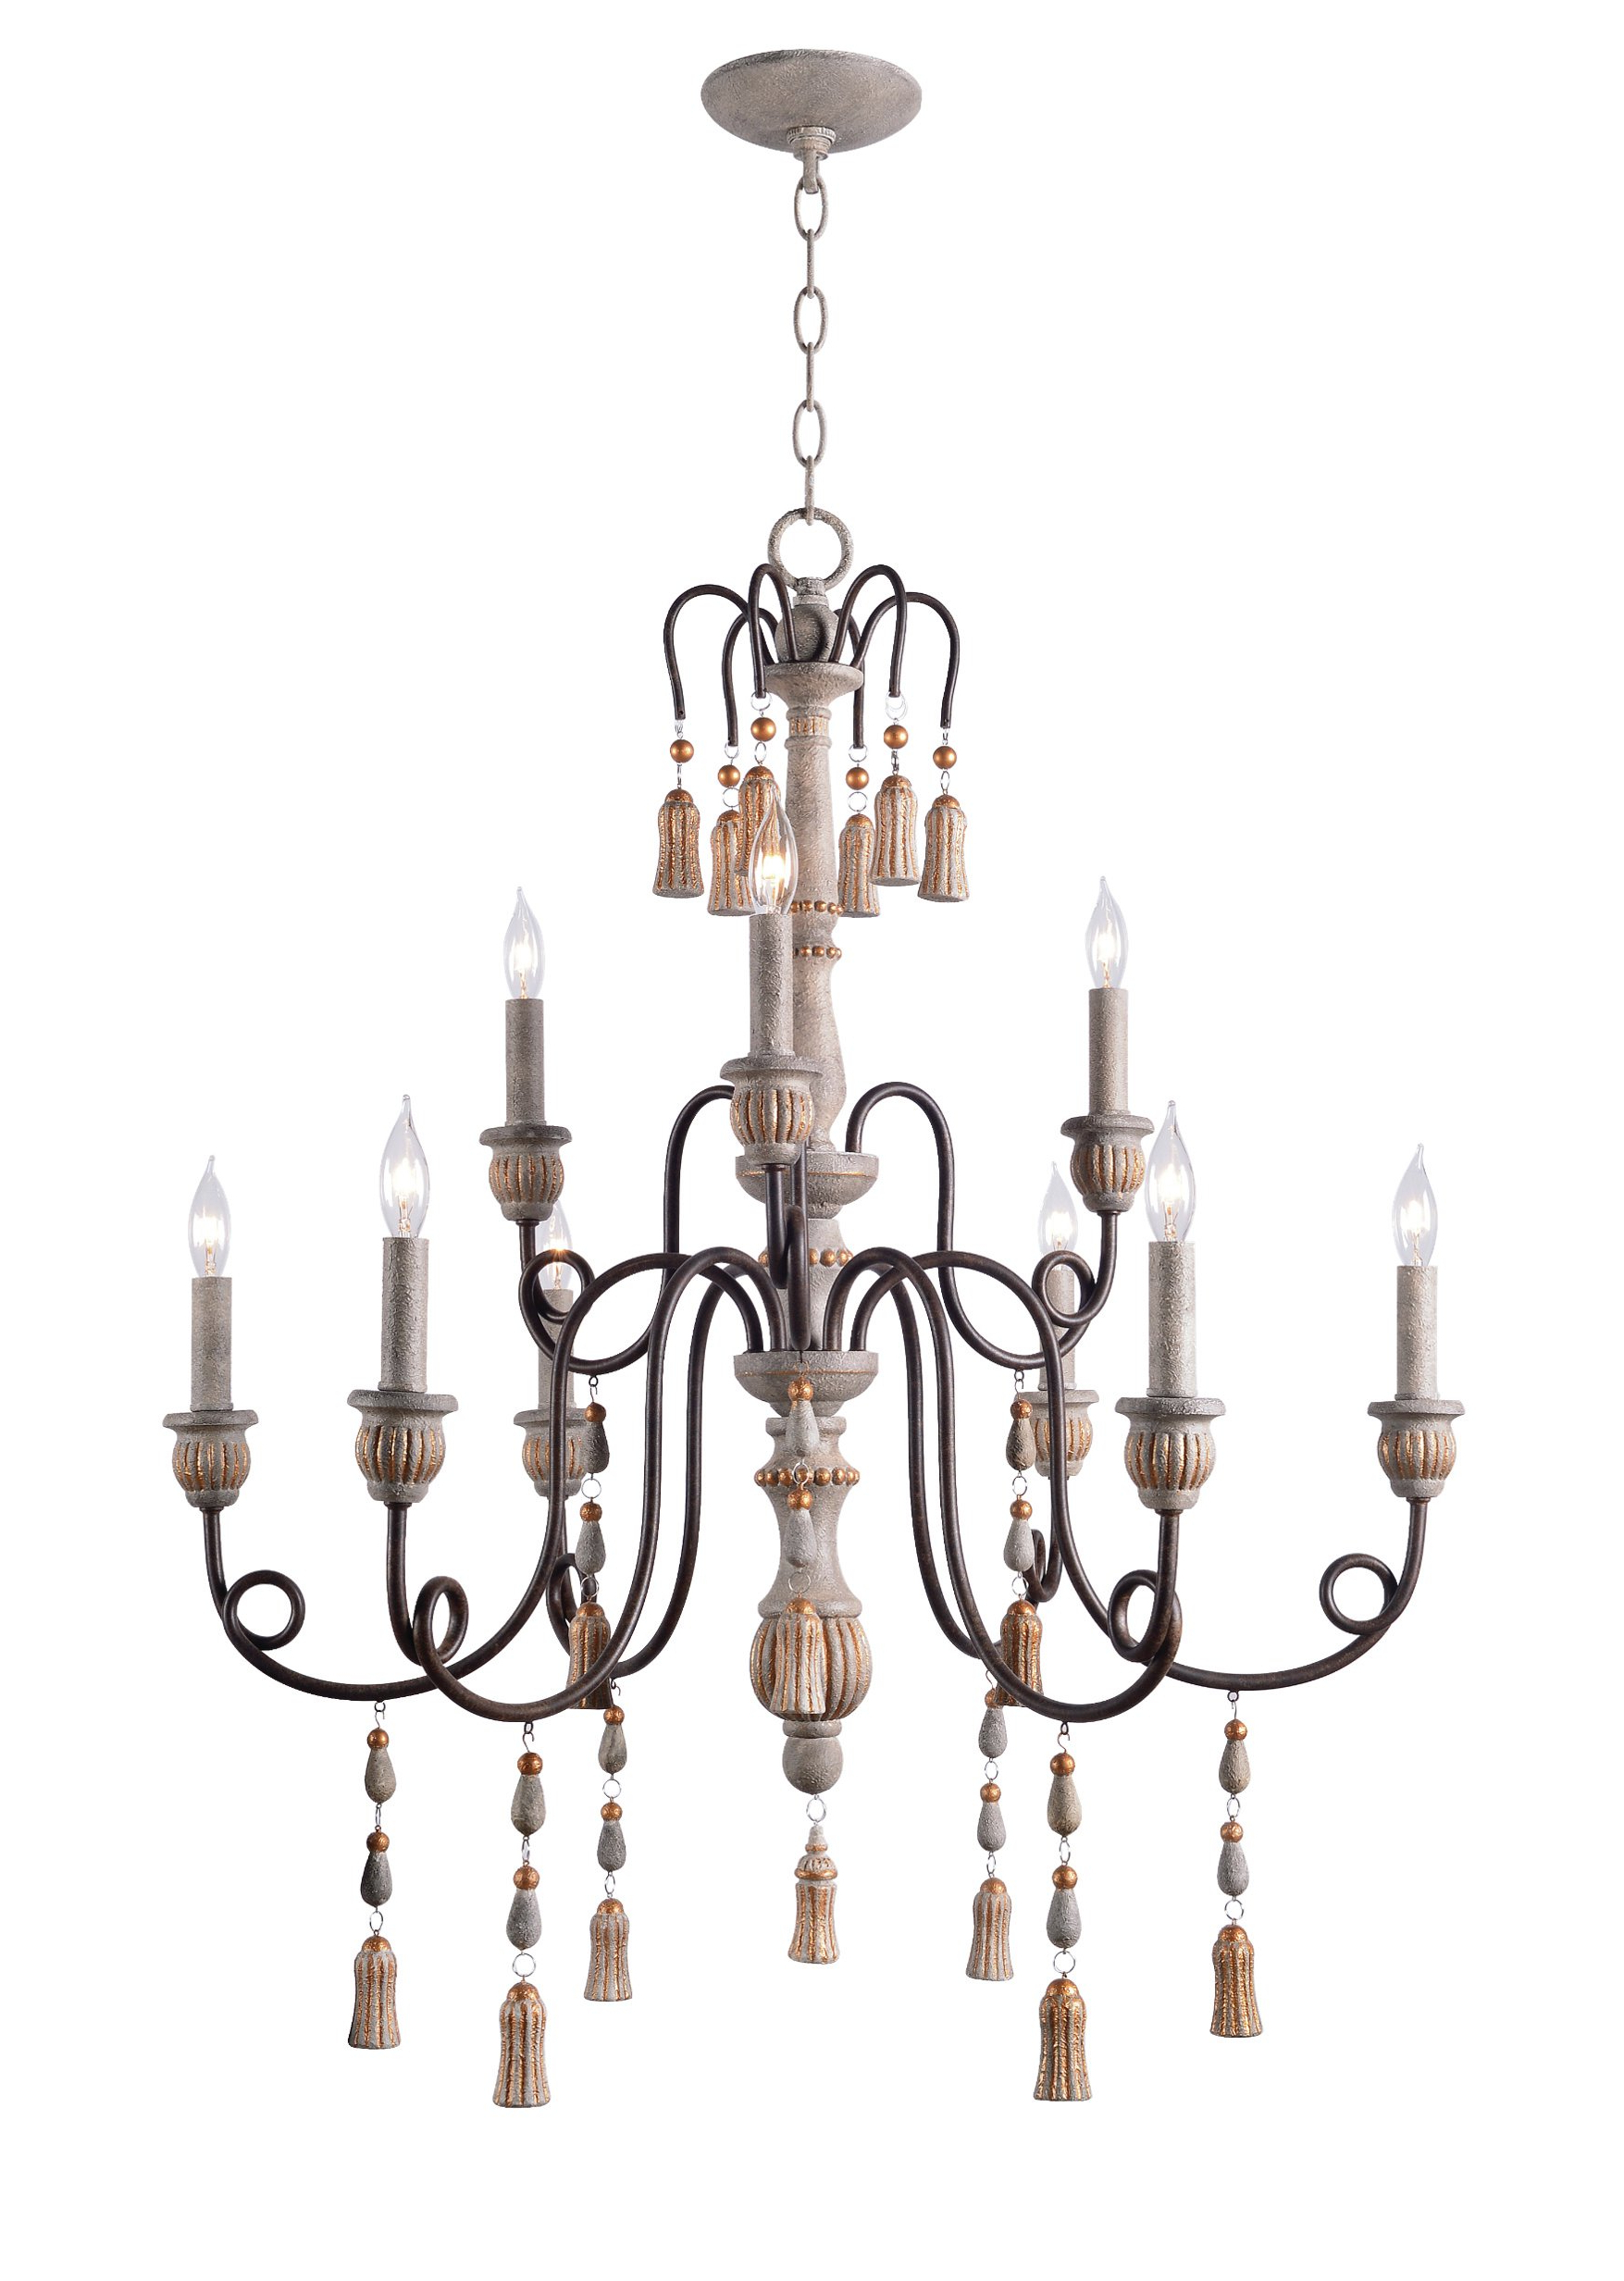 Florentina 5 Light Candle Style Chandeliers Regarding Most Recent Farmhouse & Rustic Ophelia & Co (View 9 of 20)